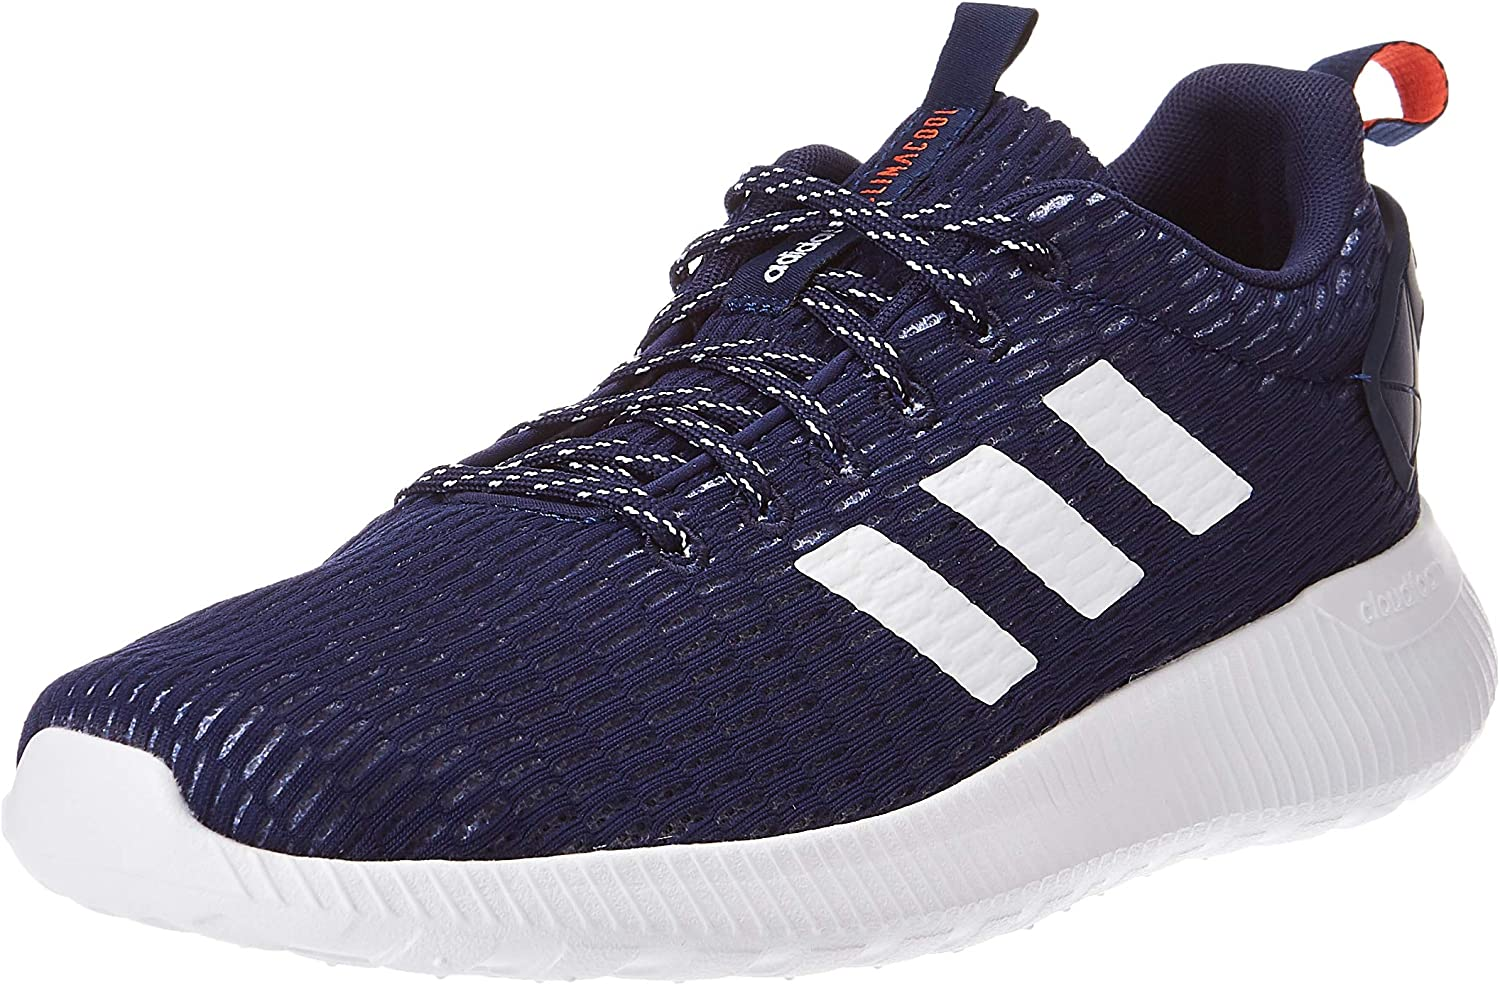 comer acoplador legación  adidas Men's Trainers Lite Racer Climacool F36748 Blue 692719:  Amazon.co.uk: Sports & Outdoors